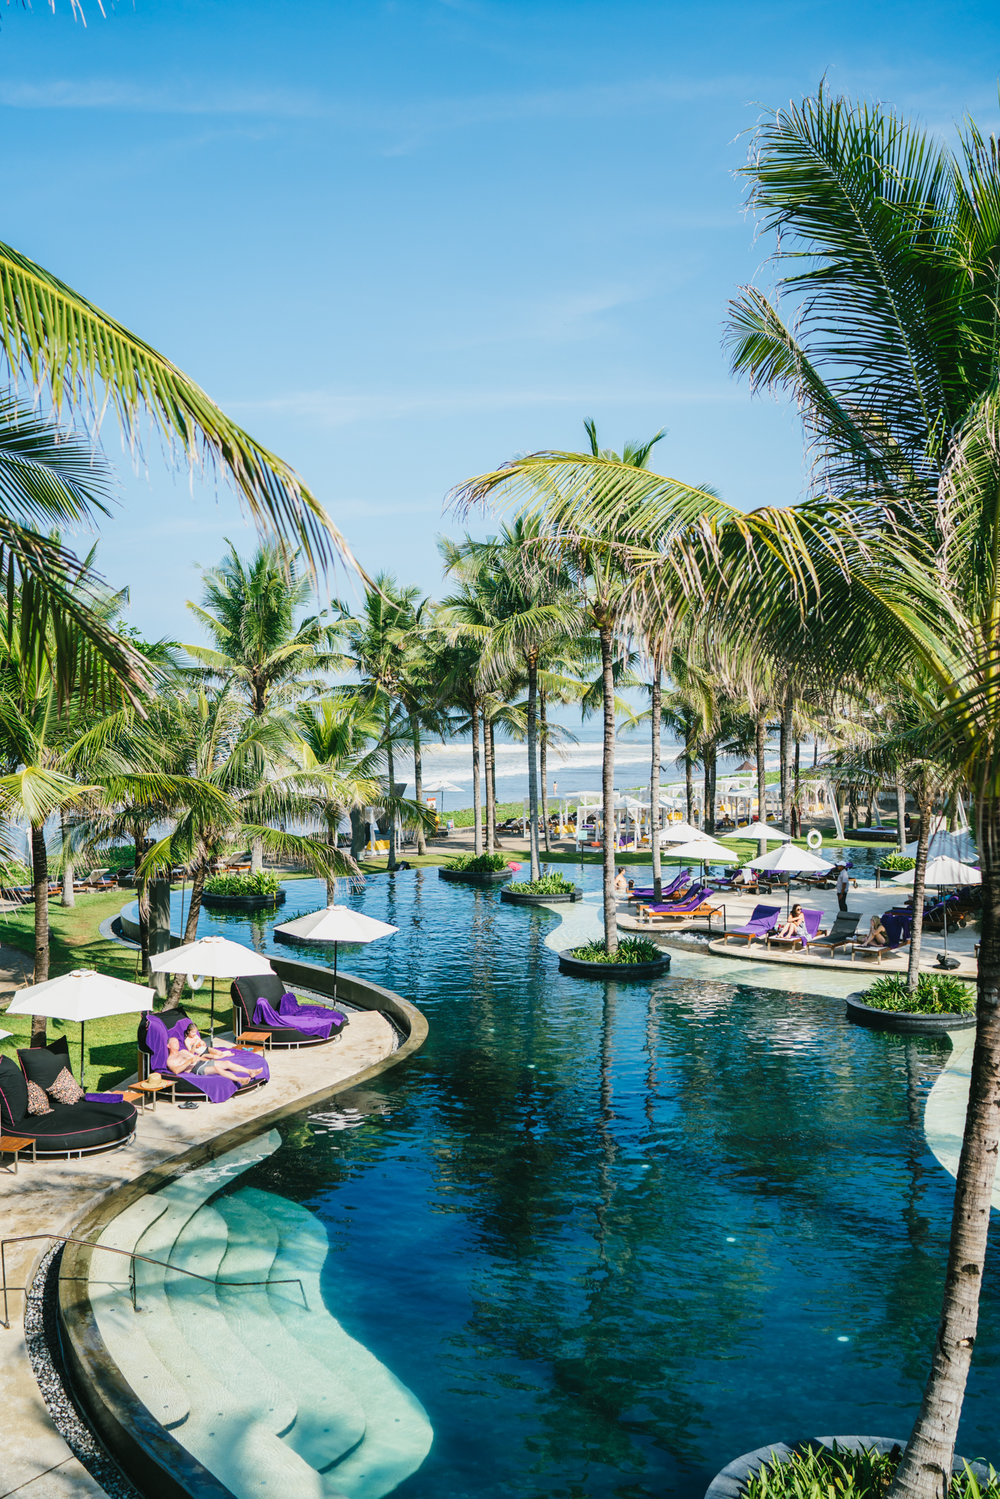 Best pools in Bali | Never Settle Travel